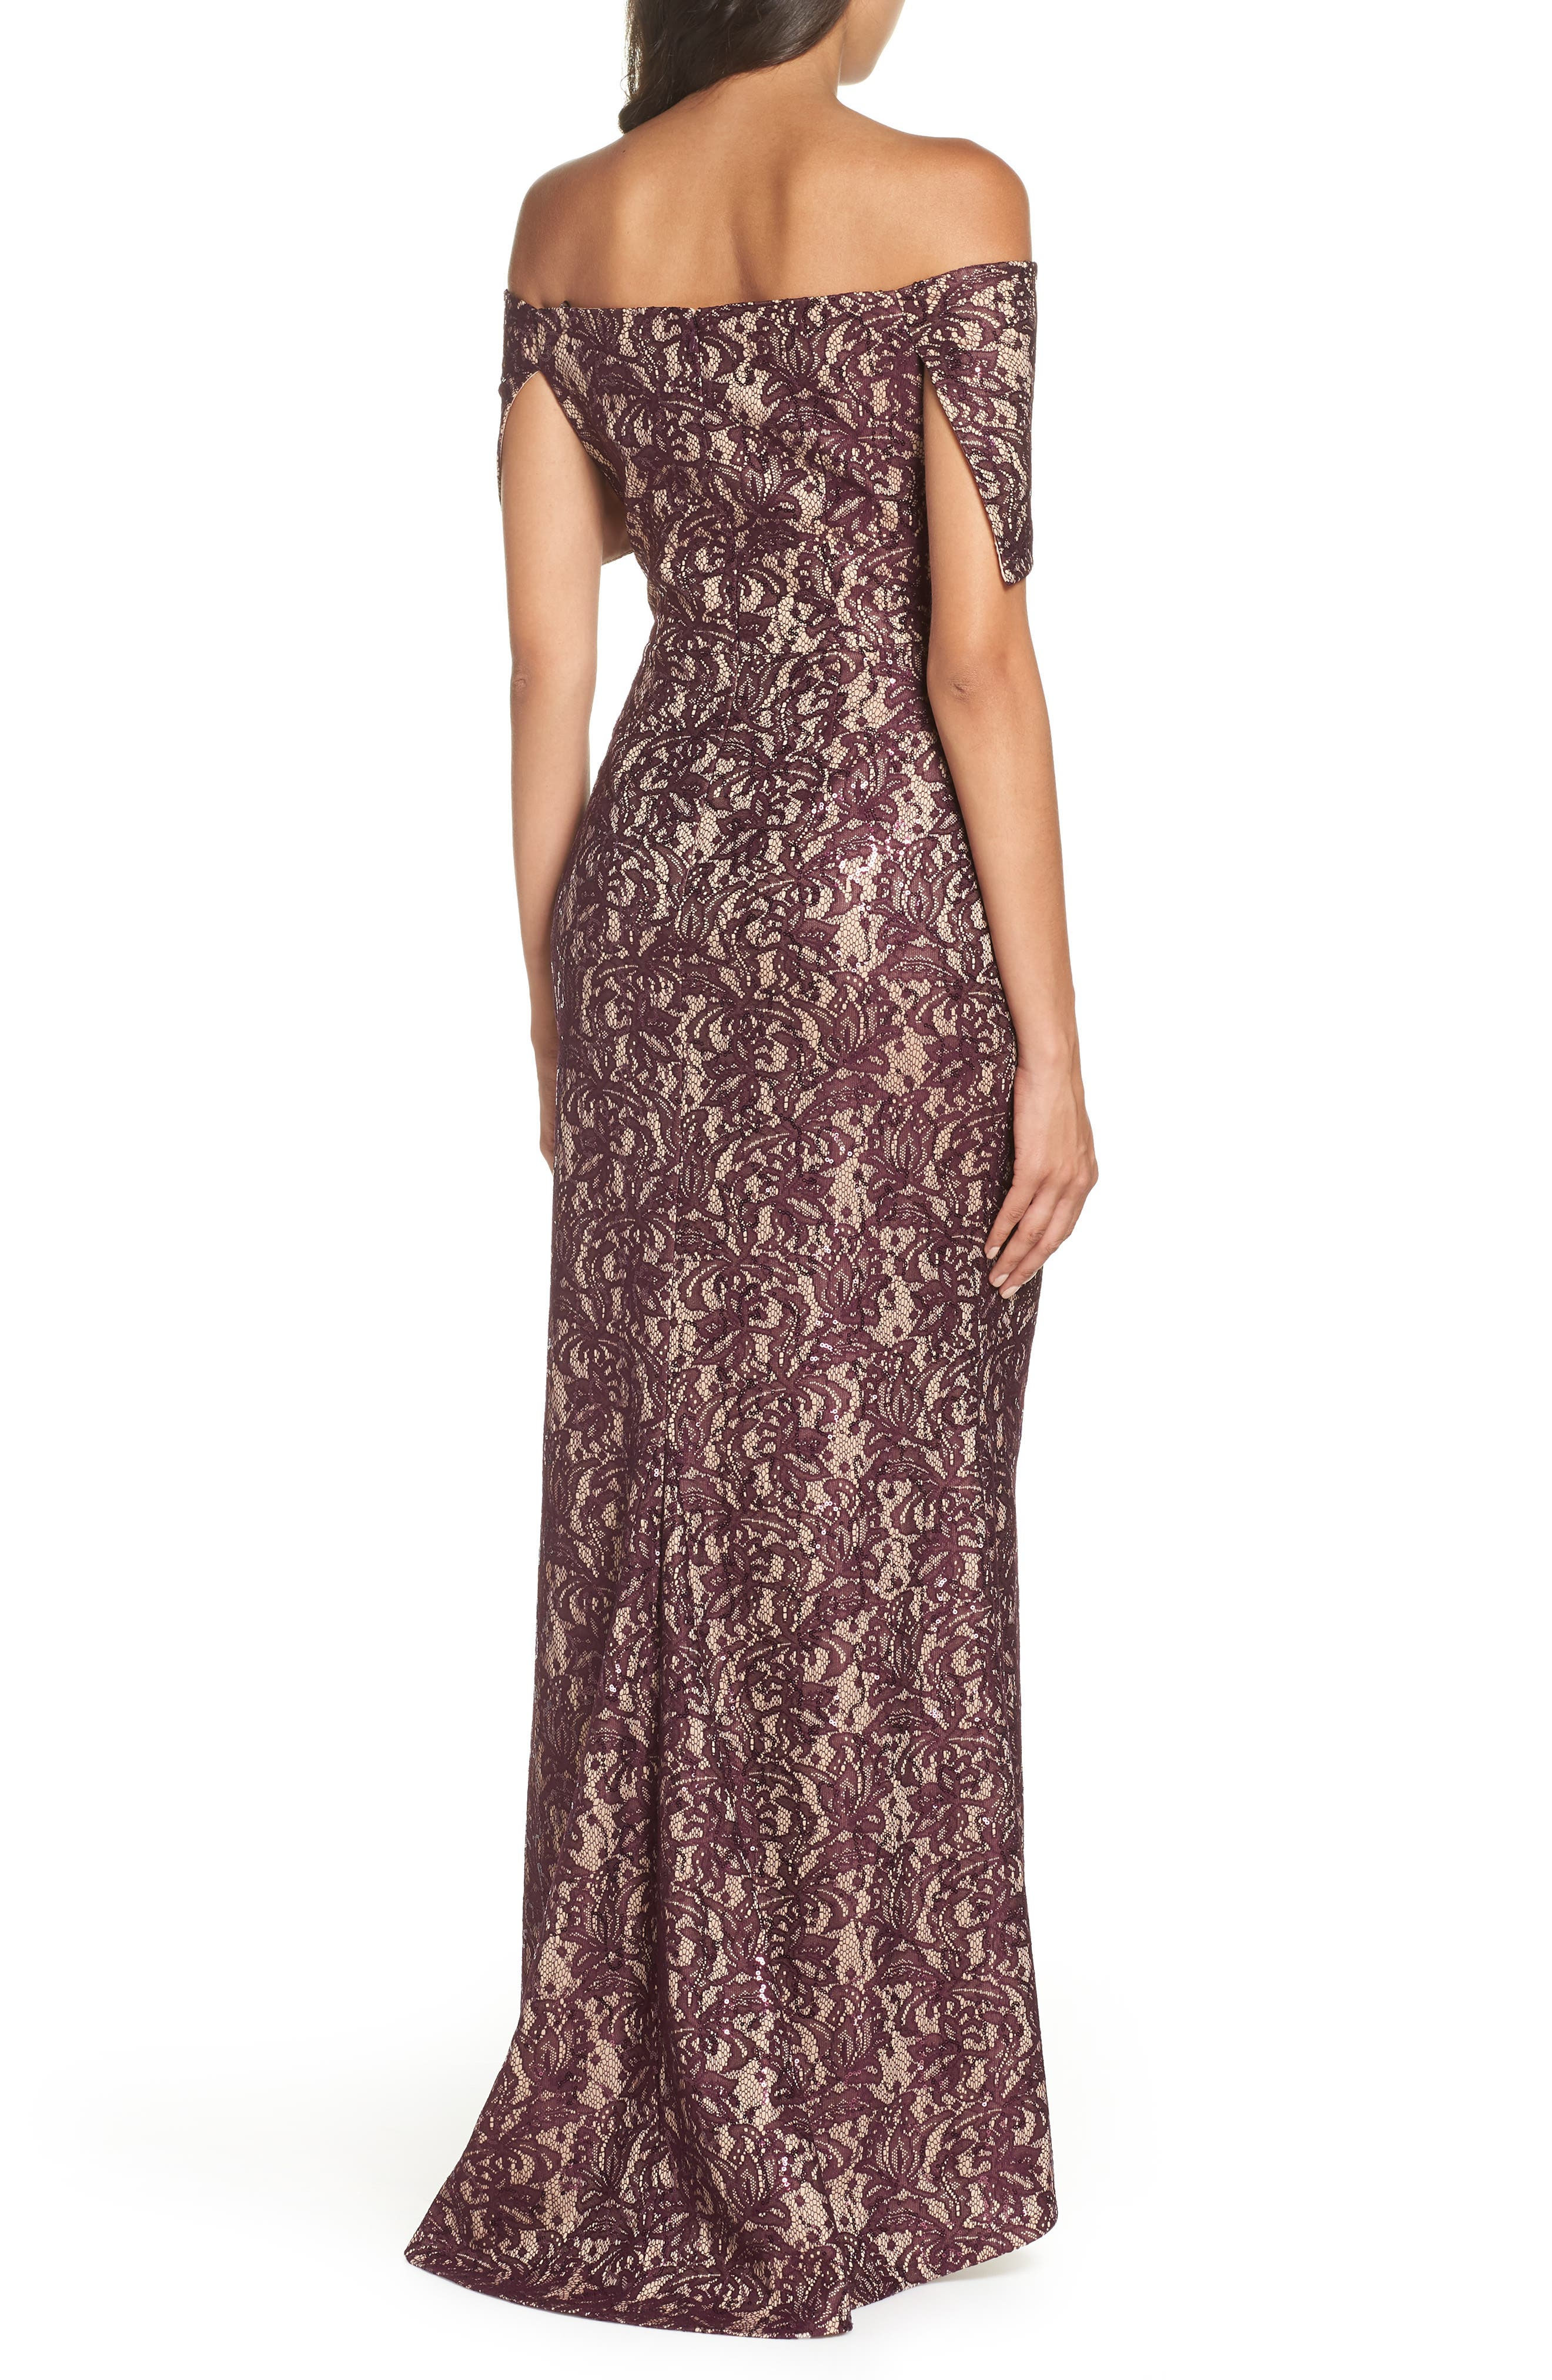 VINCE CAMUTO, Sequin Off the Shoulder Gown, Alternate thumbnail 2, color, WINE